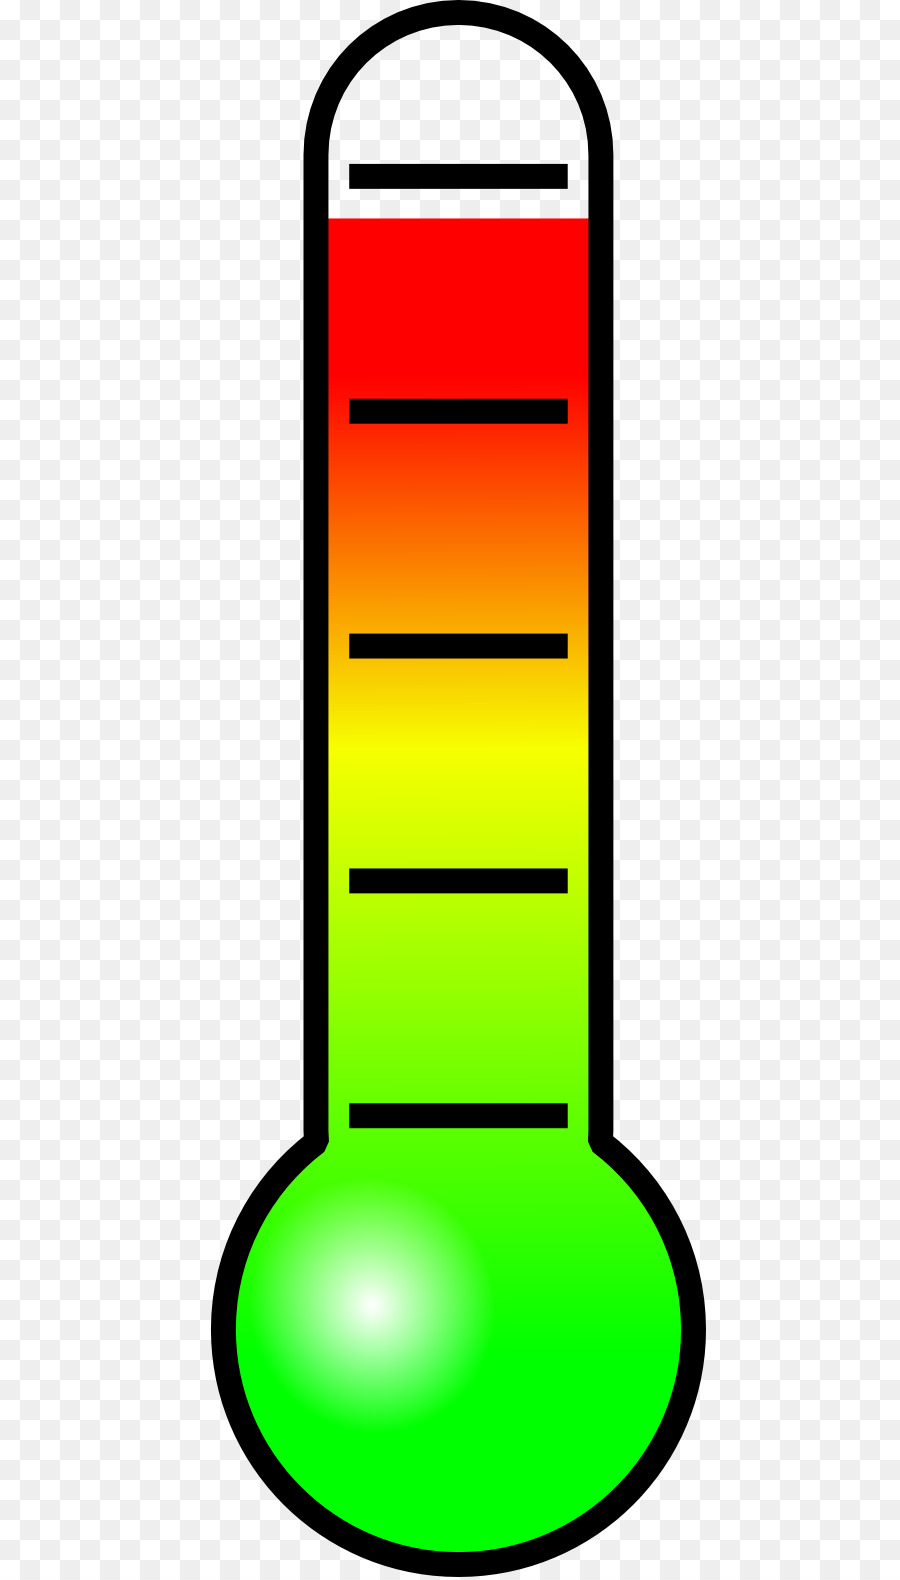 Thermometer Free content Clip art - Sick Thermometer Cliparts